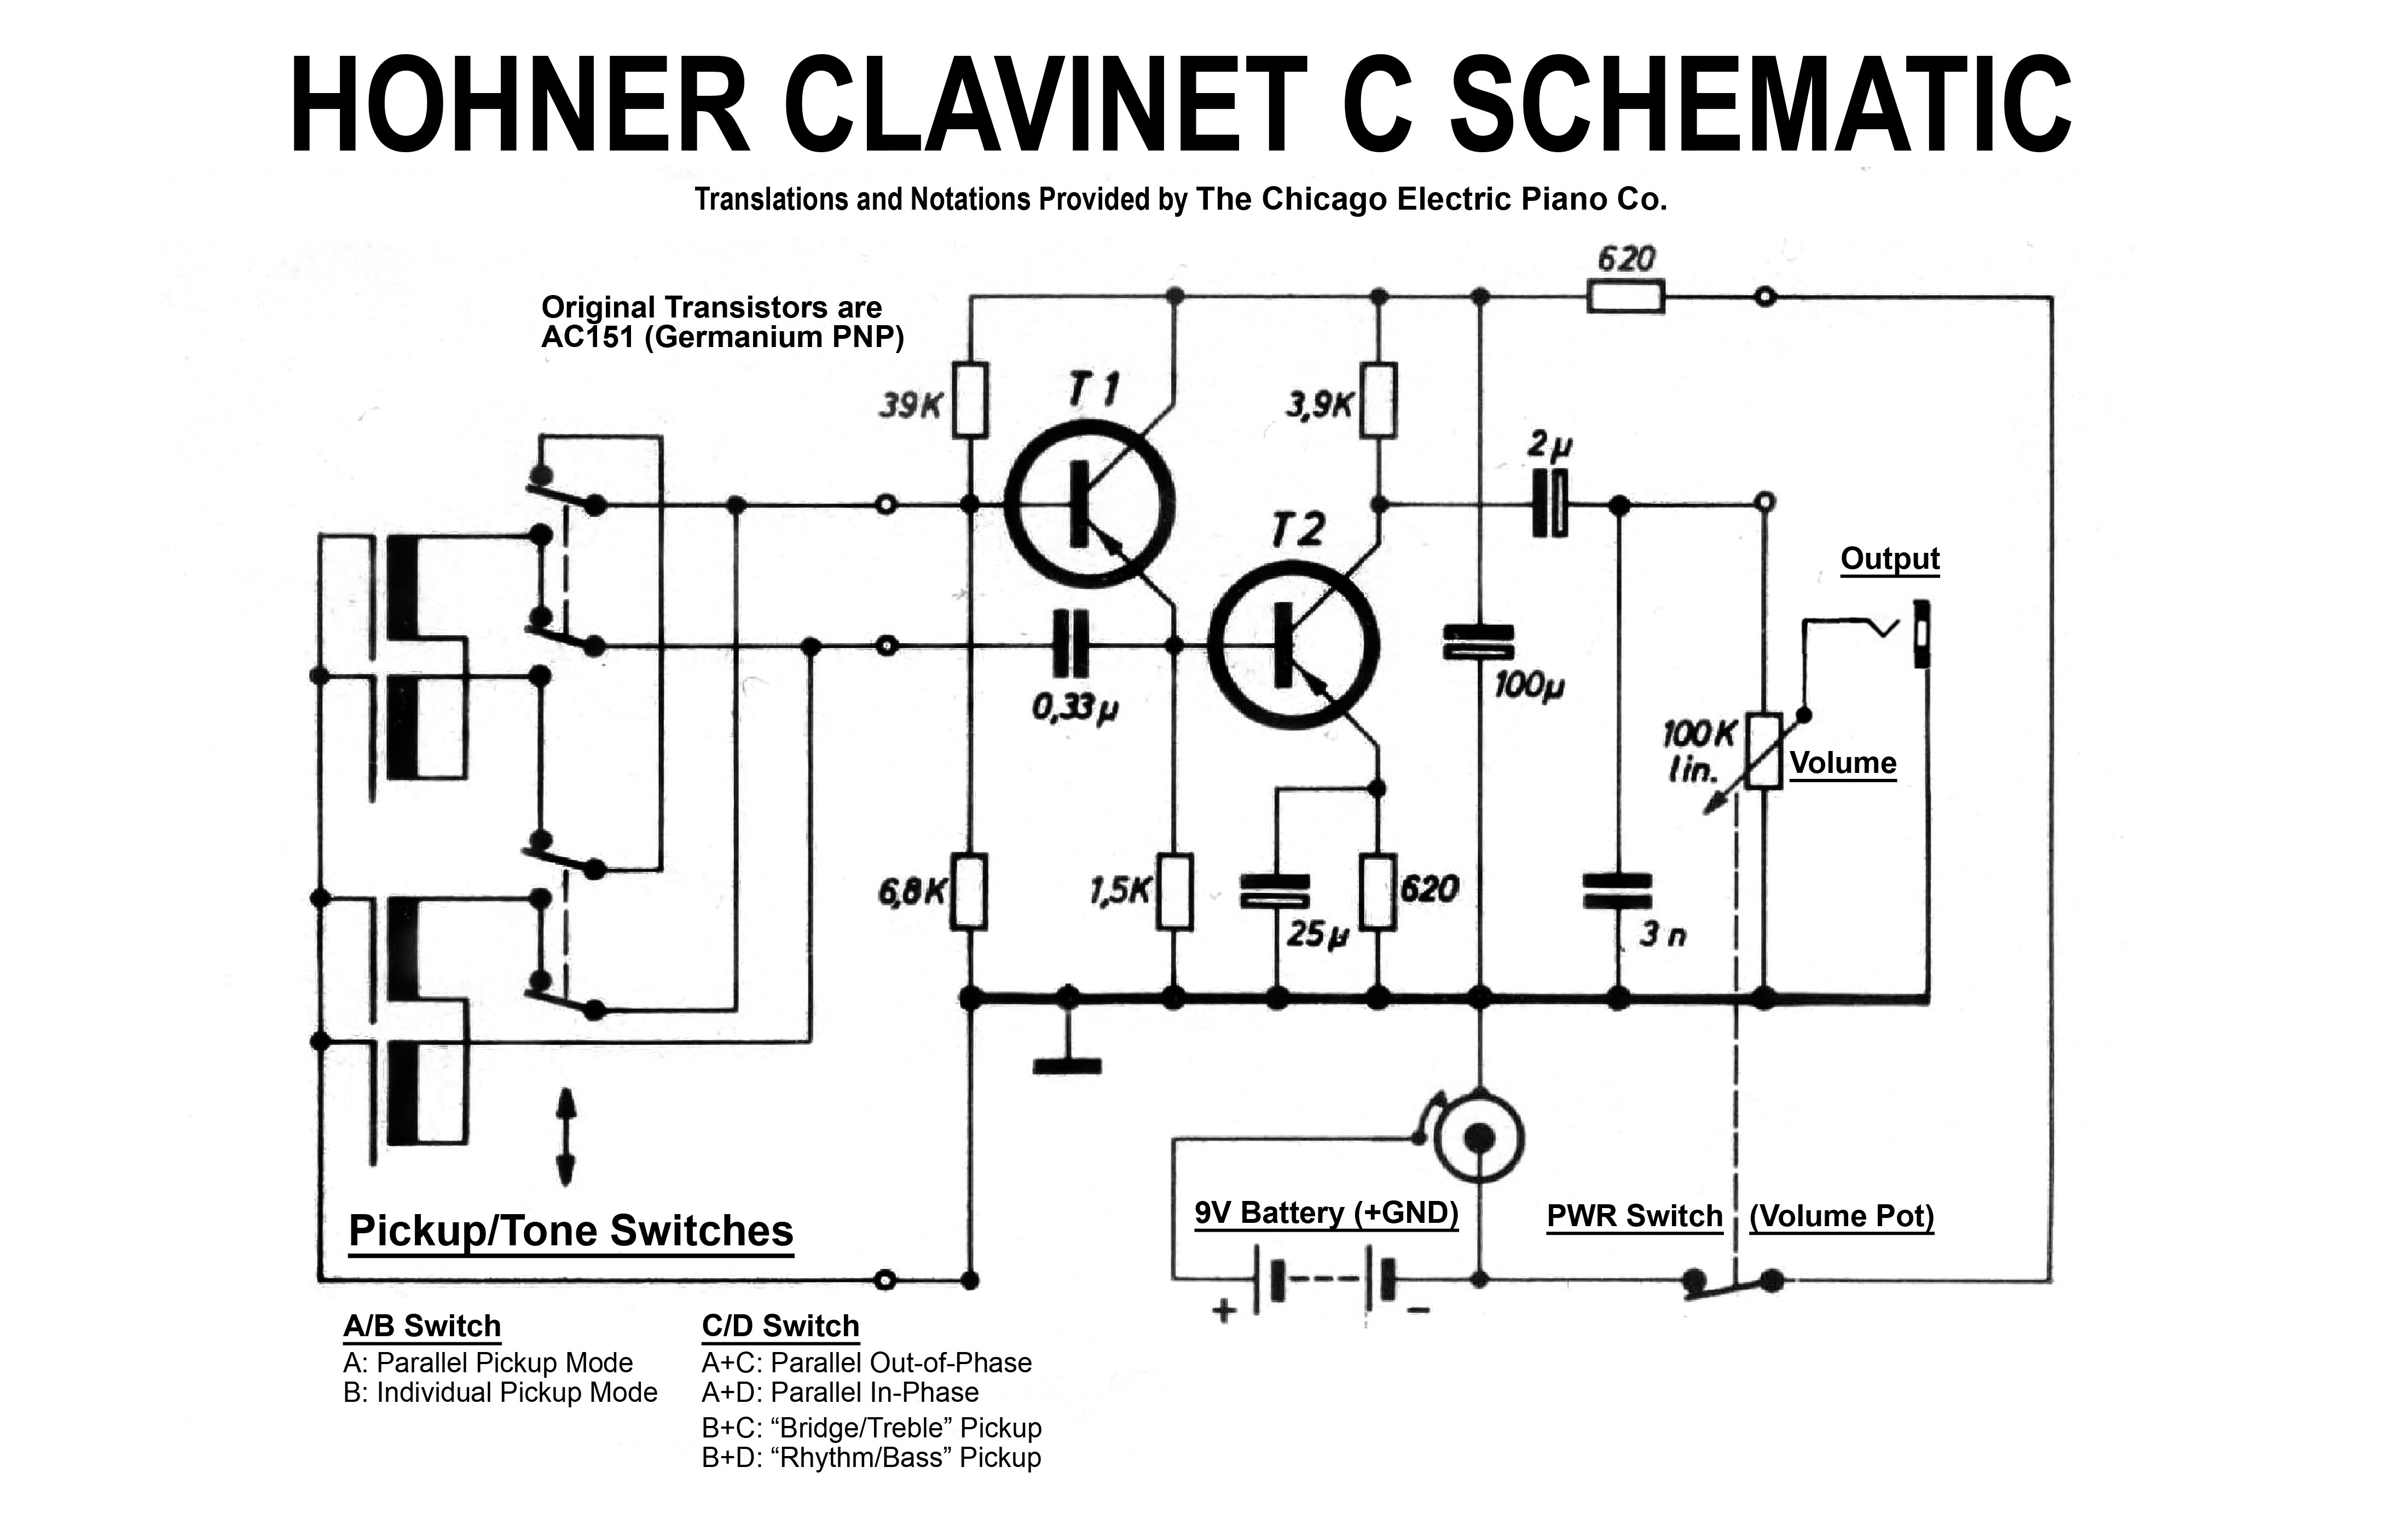 Hohner Clavinet C Schematic Tone Controls The Chicago Electric Piano Parts Diagram We Took A Little Time To Update For Include These Notes Those Who May Find Notations Useful